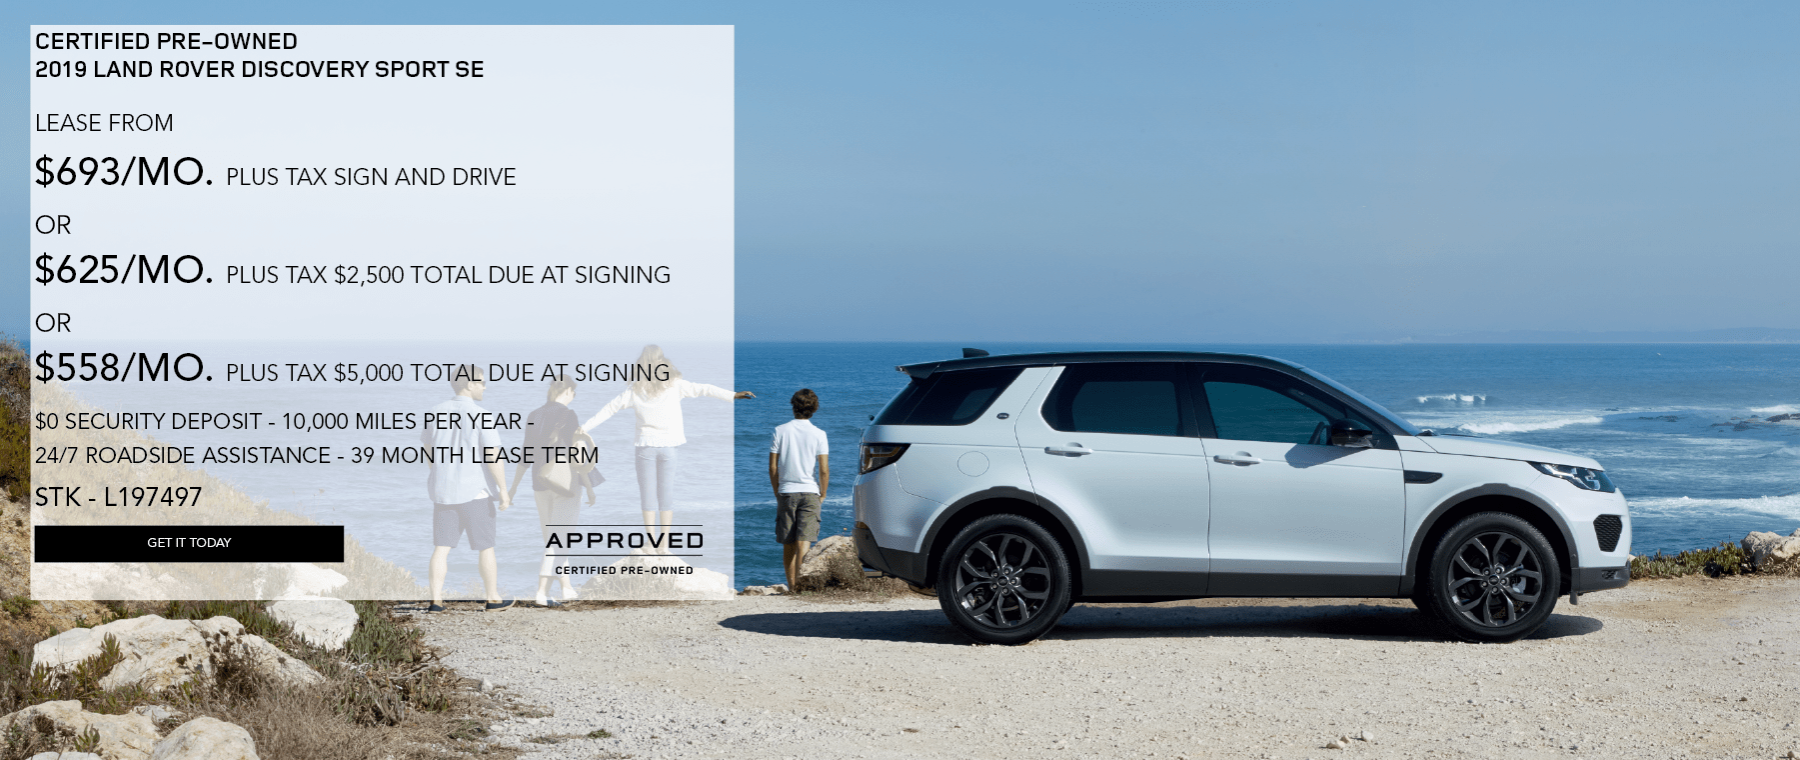 CERTIFIED PRE-OWNED 2019 LAND ROVER DISCOVERY SPORT SE. LEASE FROM $693 PER MONTH PLUS TAX SIGN AND DRIVE. OR $625 PER MONTH. PLUS TAX WITH 2,500 TOTAL DUE AT SIGNING. OR $558 PER MONTH. WITH $5,000 TOTAL DUE AT SIGNING. $0 SECURITY DEPOSIT. 10,000 MILES PER YEAR. 24/7 ROADSIDE ASSISTANCE. 39 MONTH. LEASE TERM STOCK NUMBER L197497. WHITE DISCOVERY SPORT PARKED ON THE BEACH.